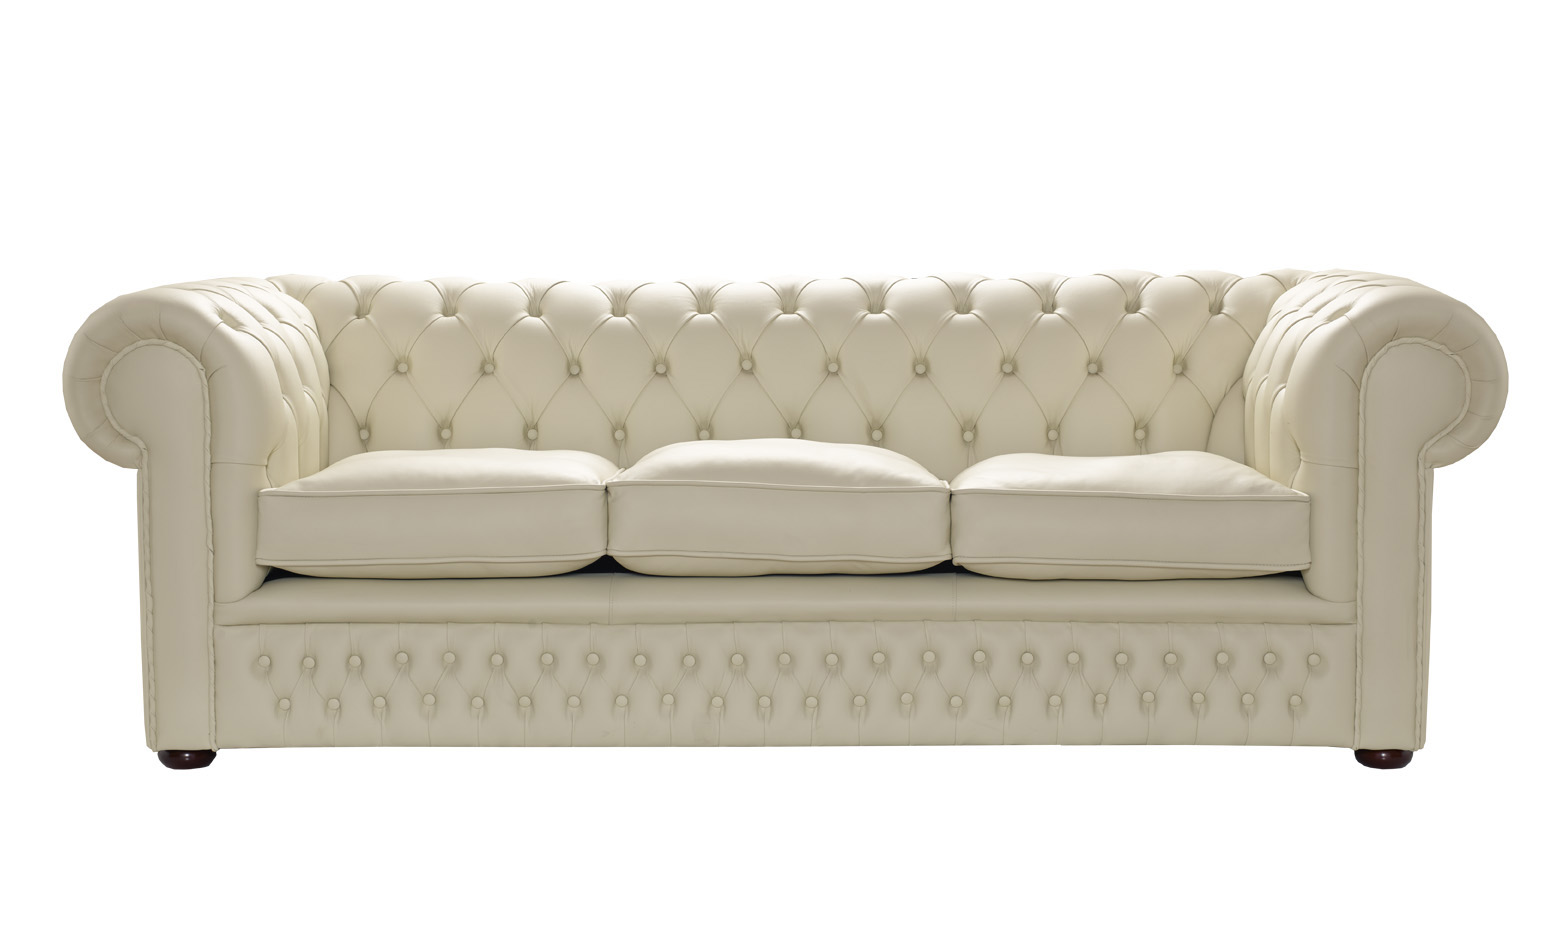 Ordinaire Great Cream Colored Sofa 84 With Additional Sofa Room Ideas With Cream  Colored Sofa